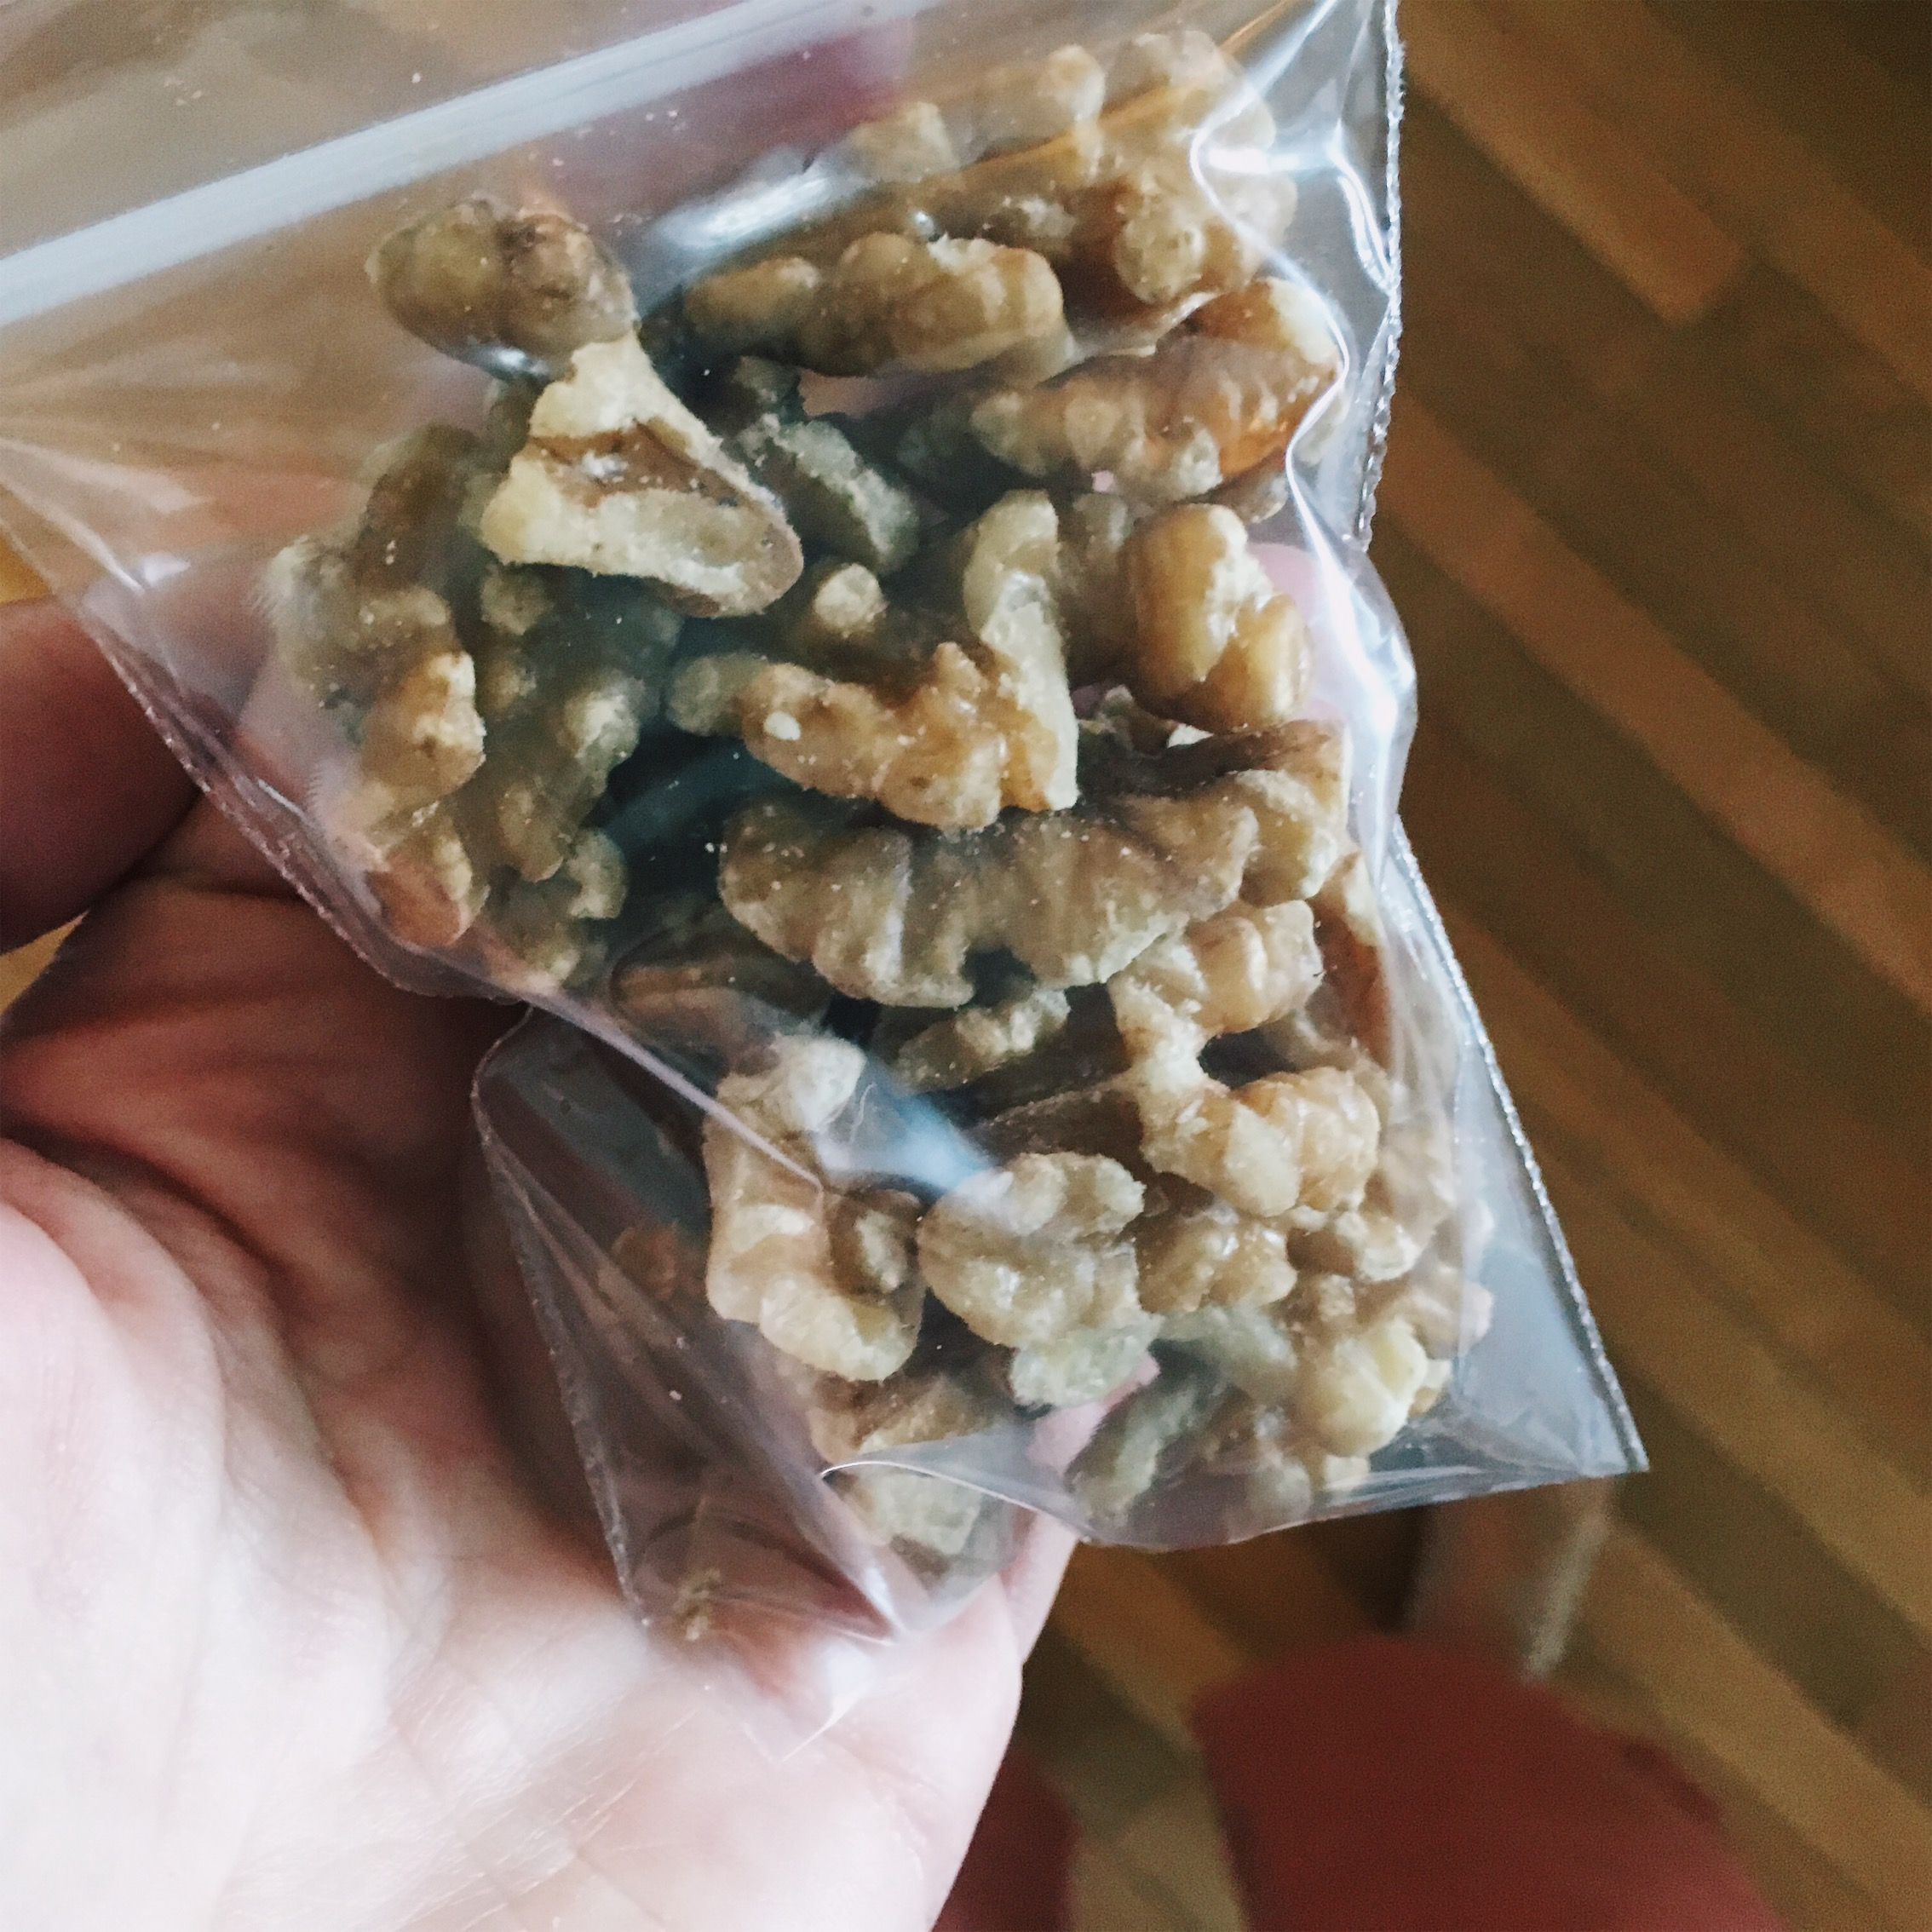 11:55pm - handful of raw walnuts. I stash little bags of nuts in my purse / gym bag and desk drawer so I never go hungry even if I have to eat while working.